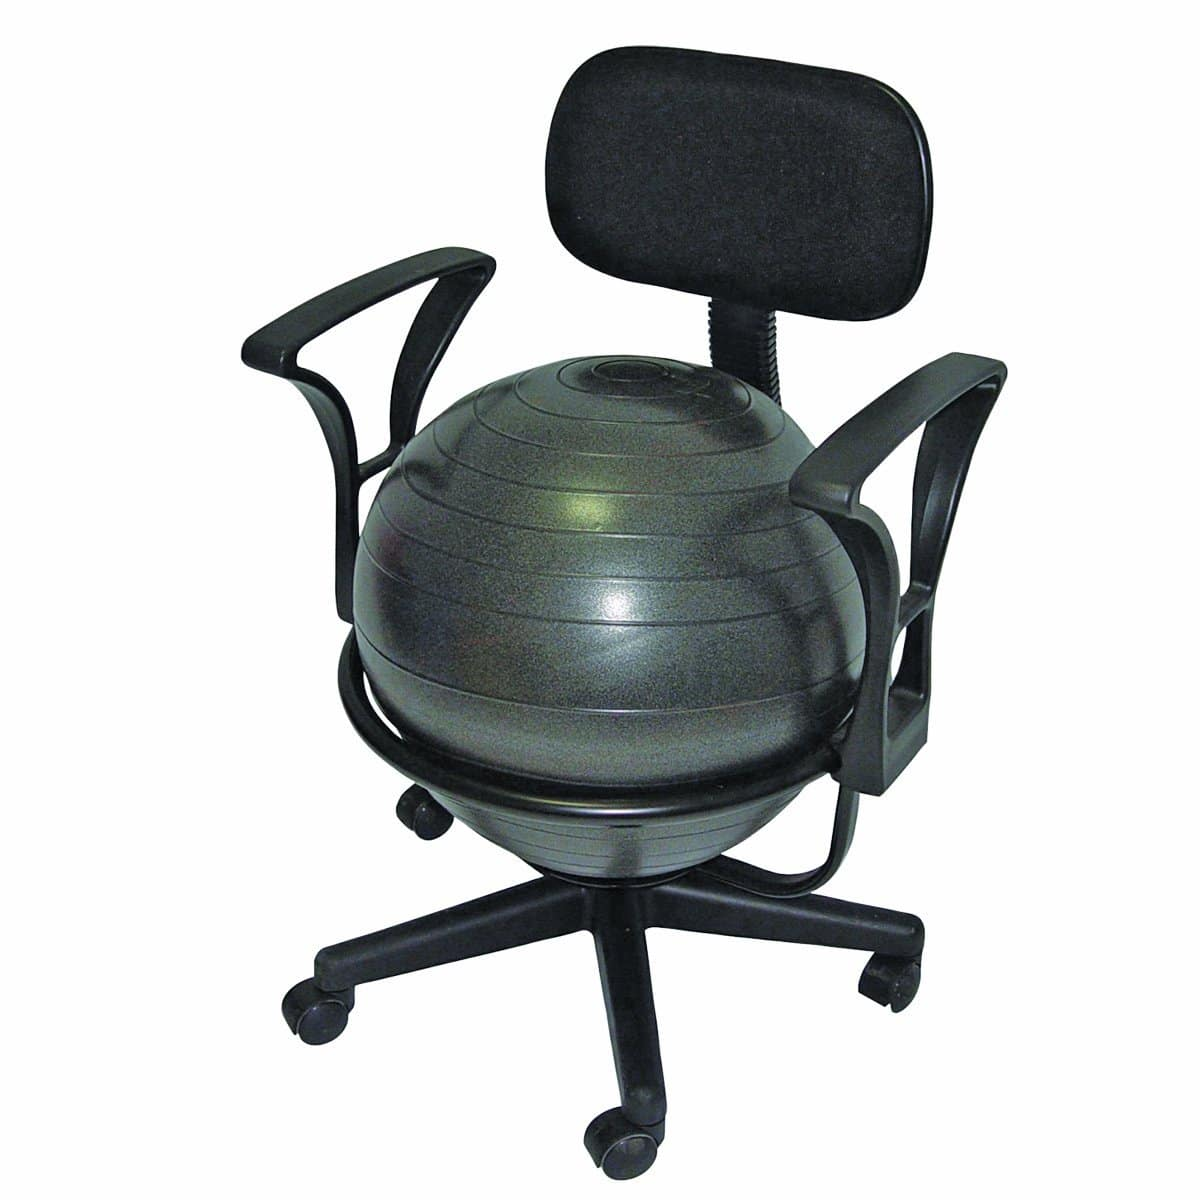 Yoga ball chair - CanDo Metal Ball Chair